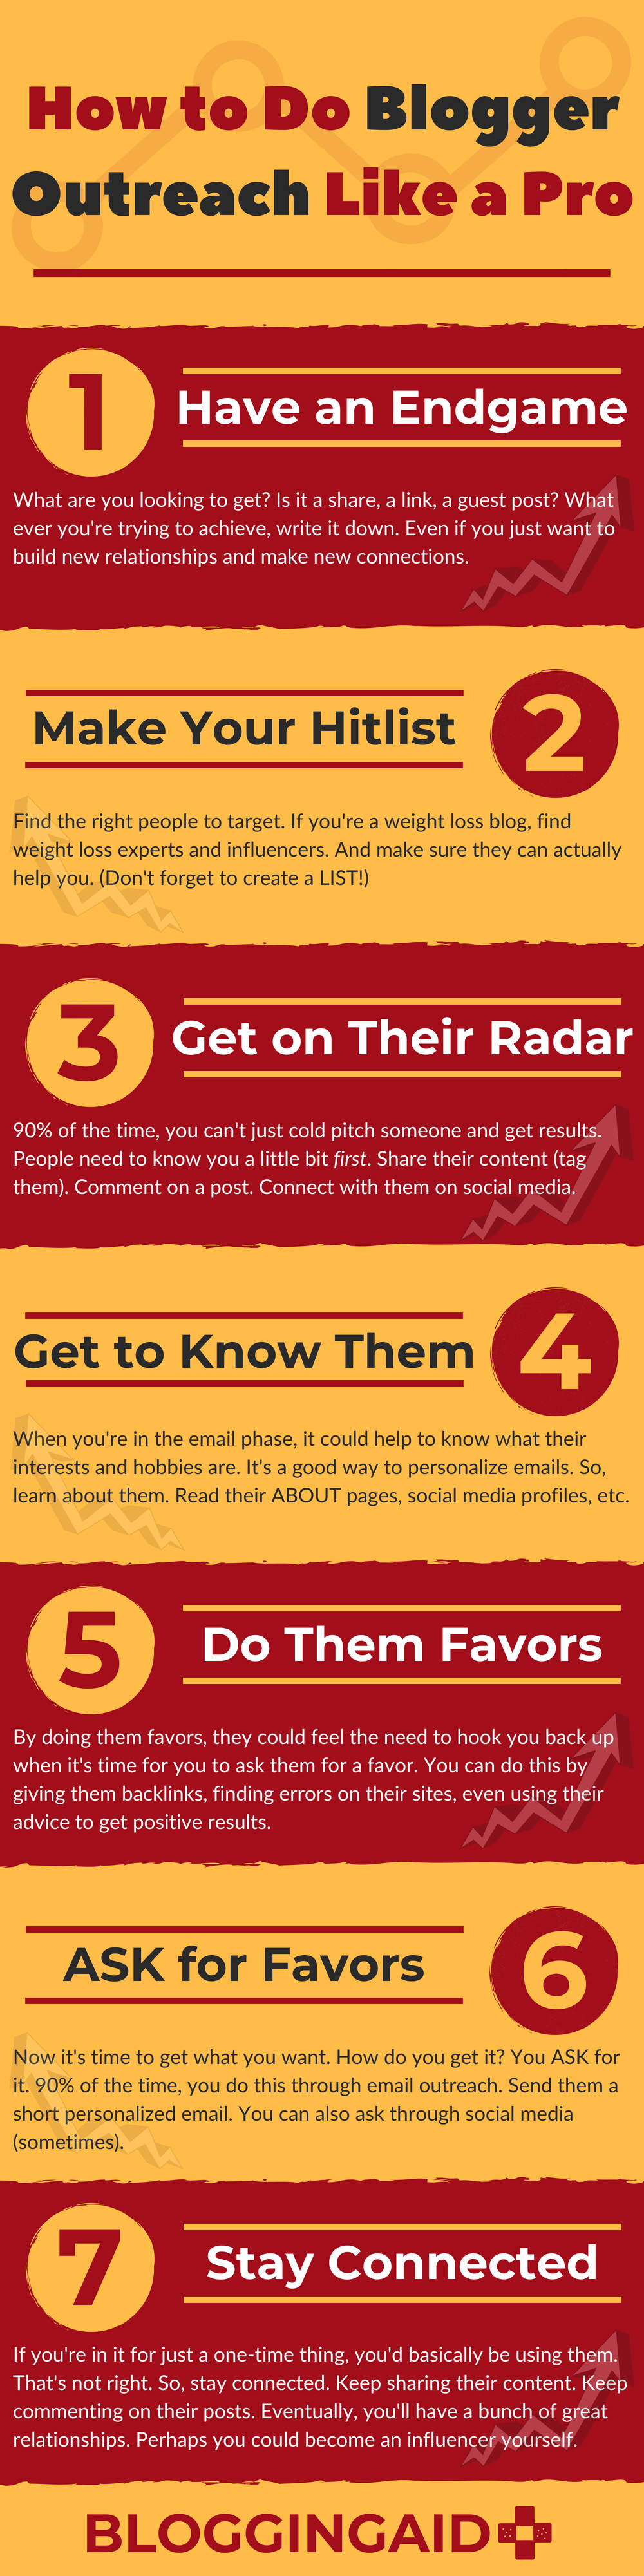 How to Do Blogger Outreach Like a Pro - Infographic by Blogging Aid